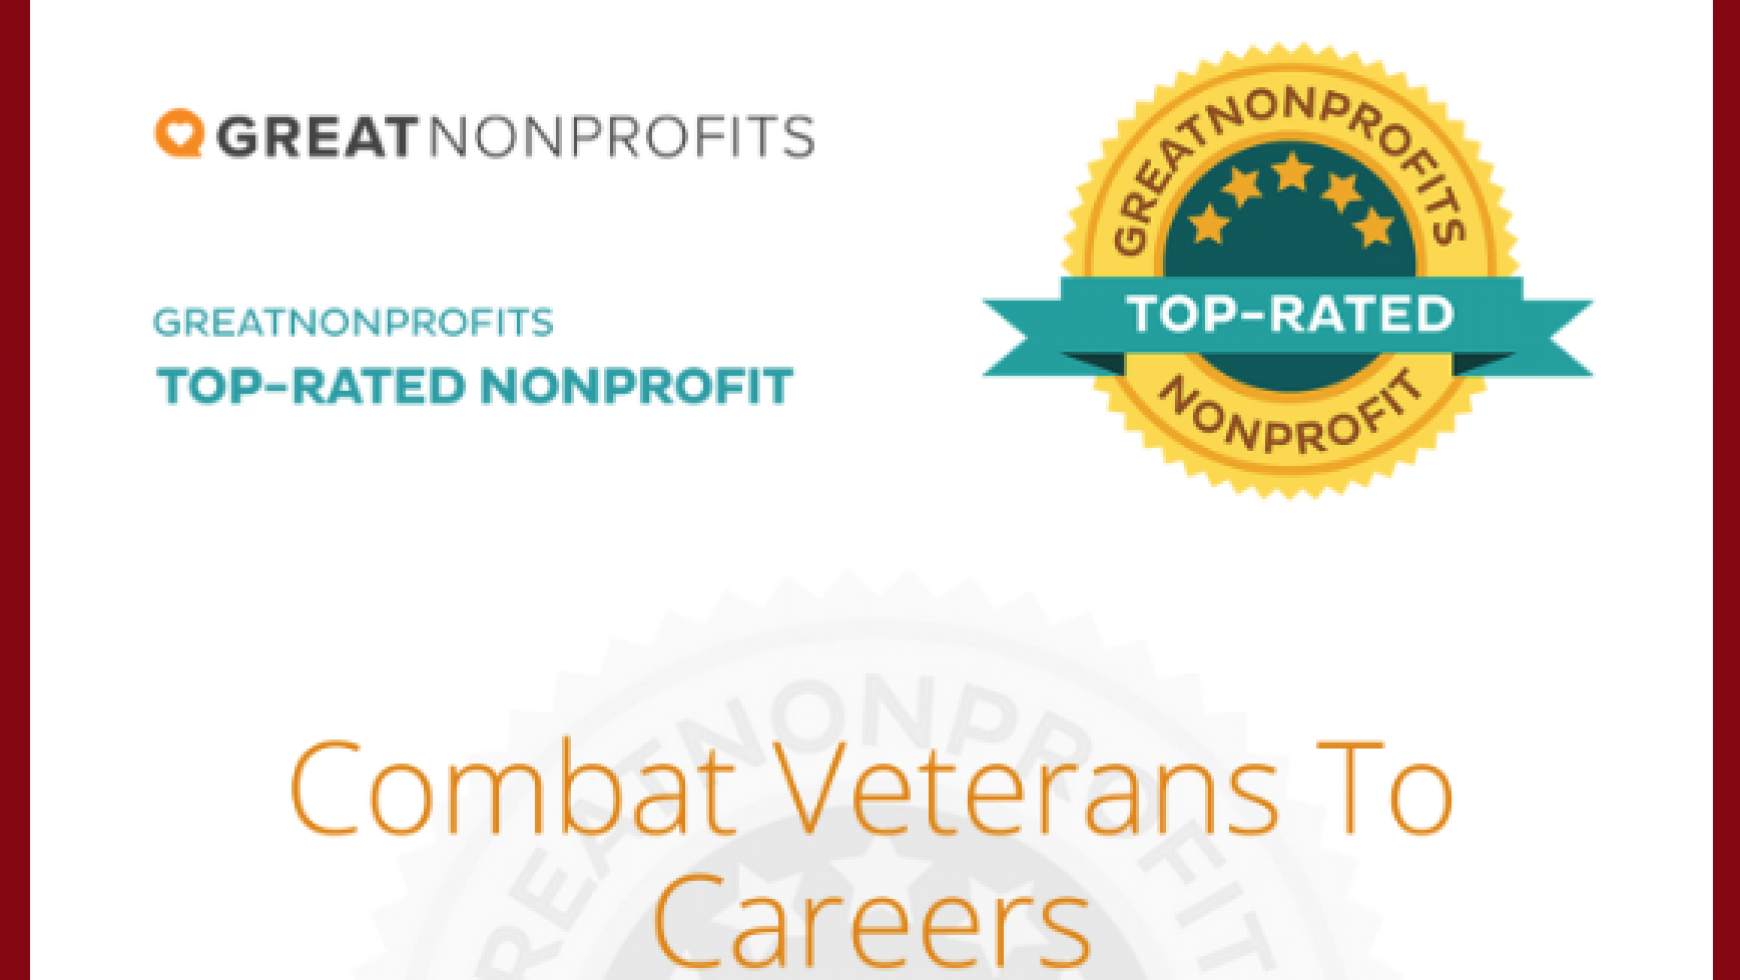 CVC Wins 2020 Top-Rated Award from GreatNonprofits